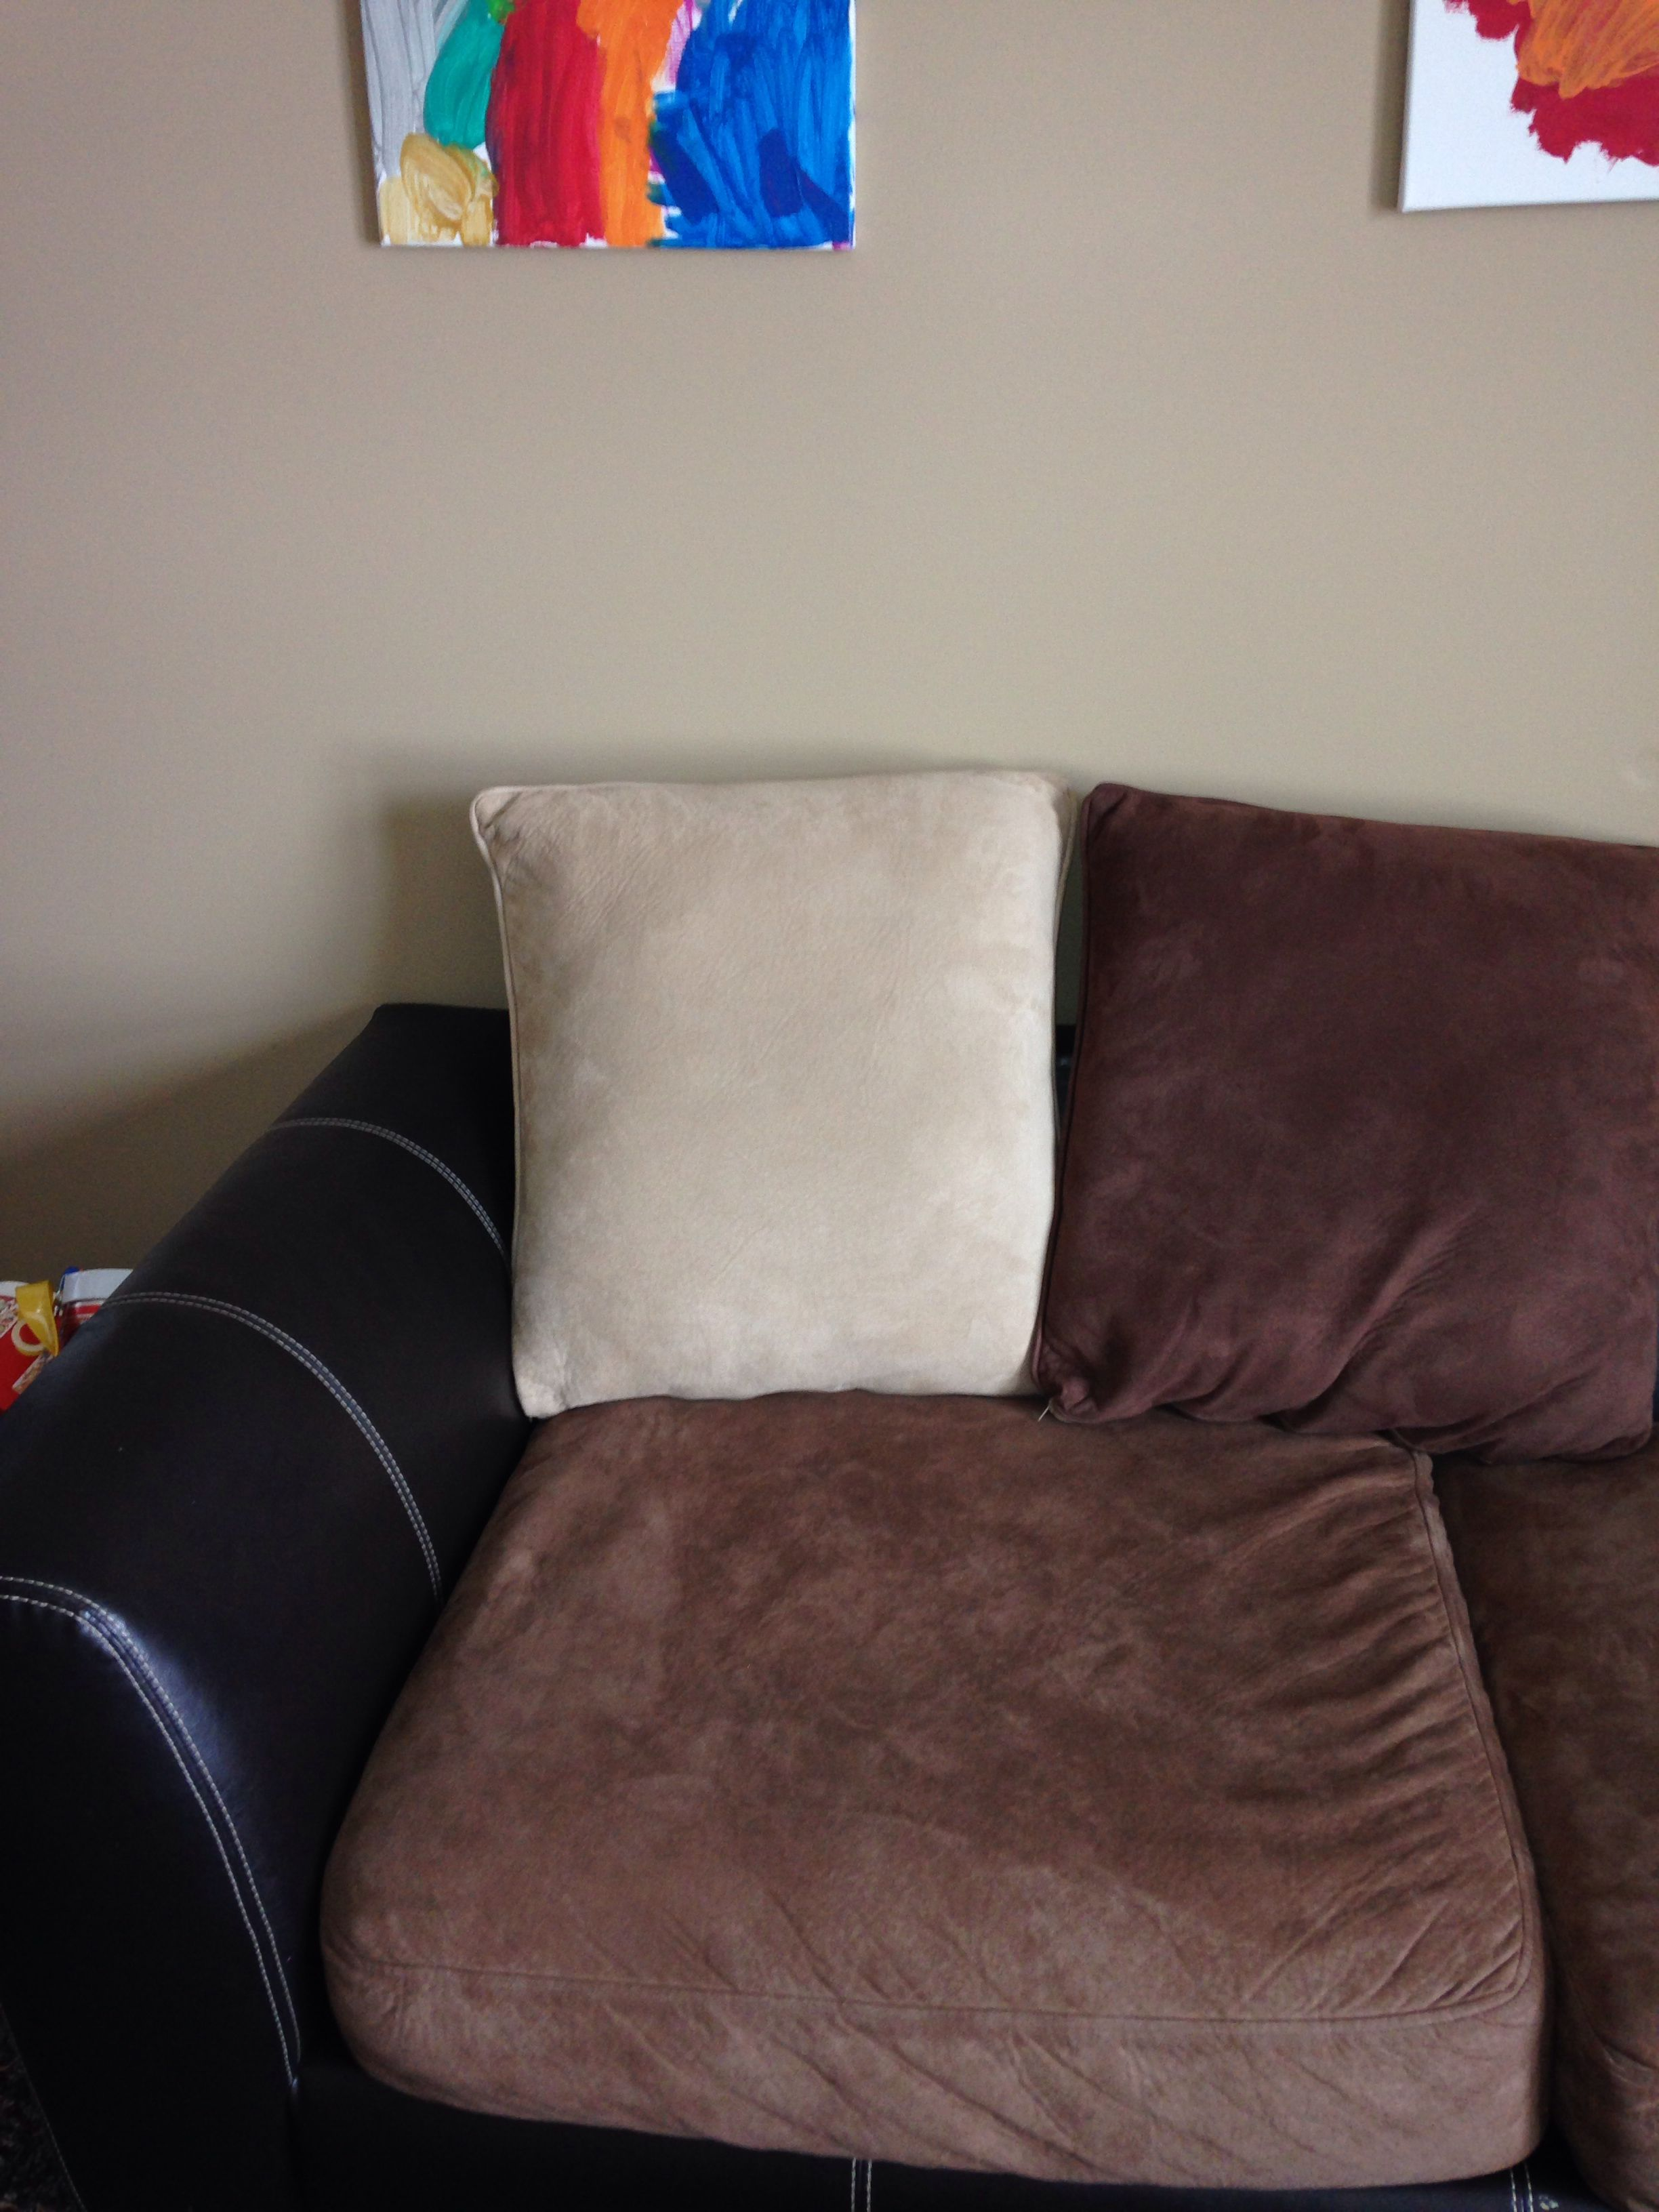 You can clean your couch microfiber cushion covers in the washing